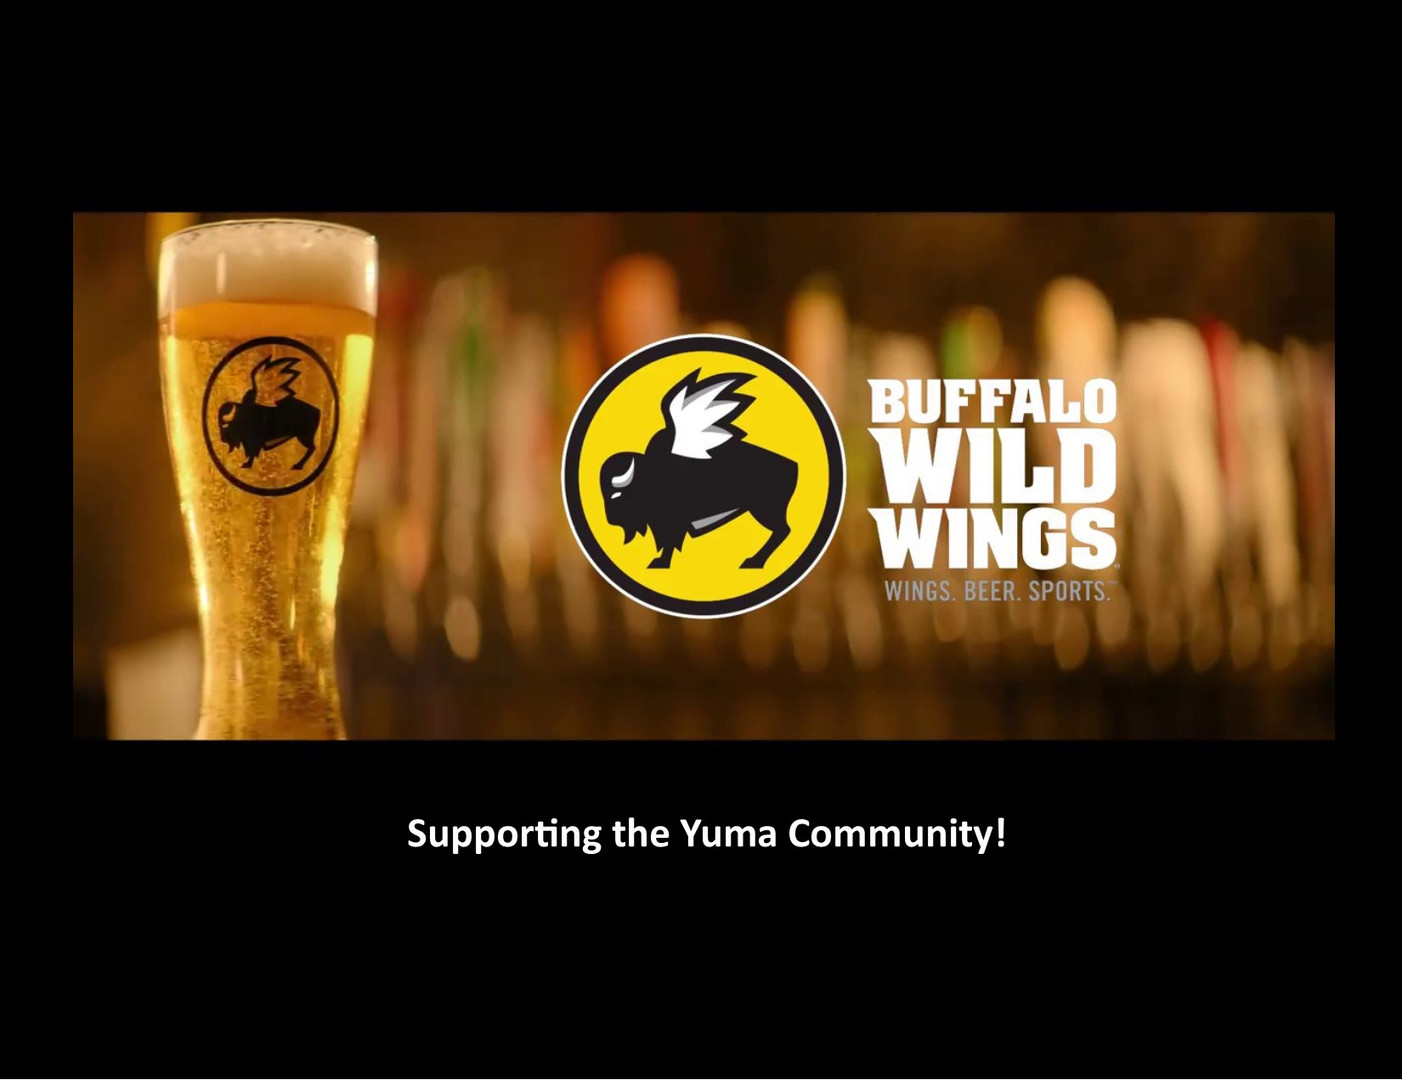 Buffalo Wild Wings Yuma